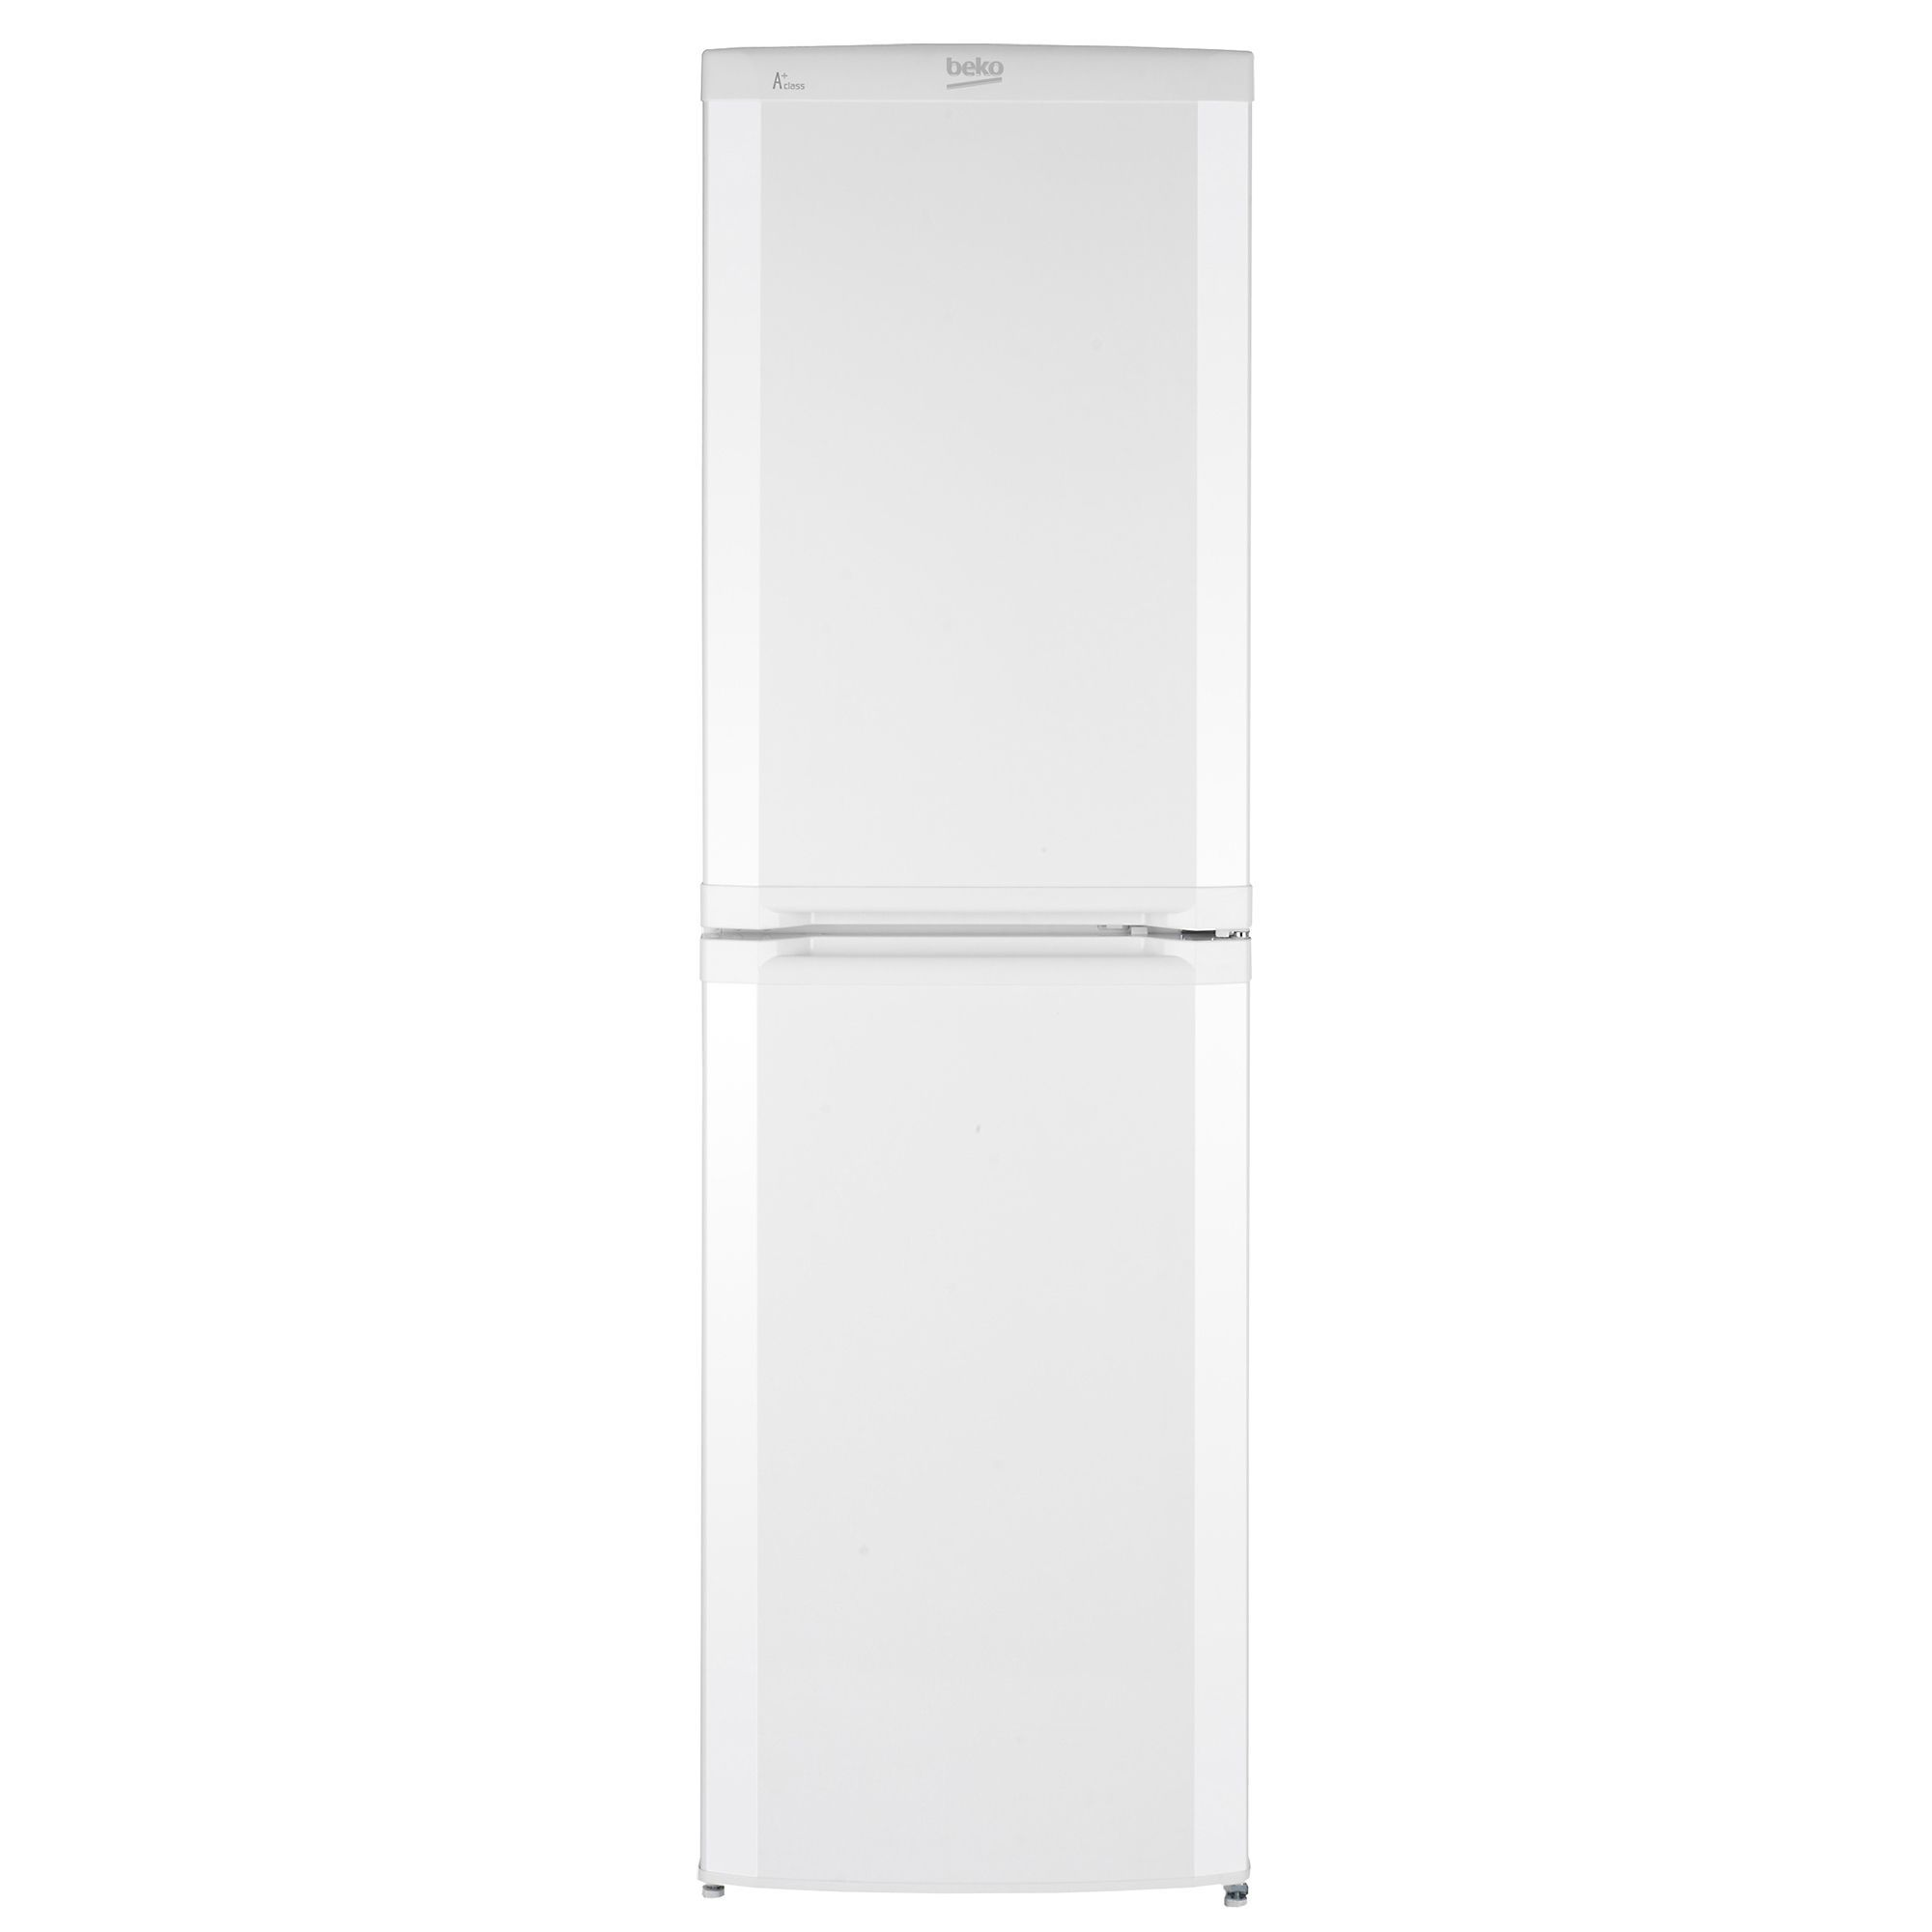 Beko CS5824W White Freestanding Fridge Freezer